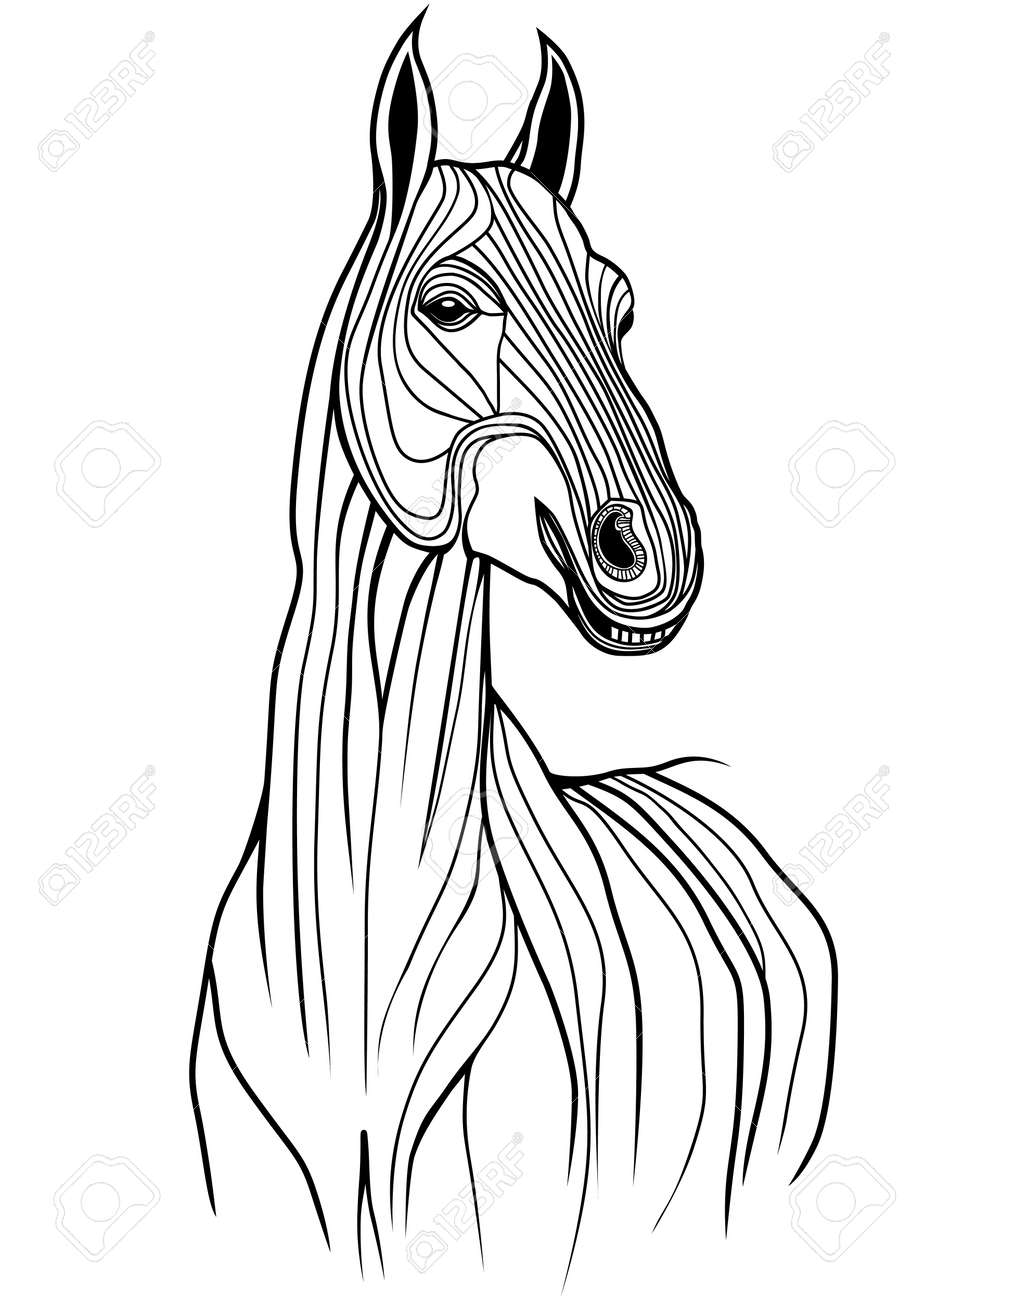 Horse Head Animal Illustration For T Shirt Sketch Tattoo Design Royalty Free Cliparts Vectors And Stock Illustration Image 19584095